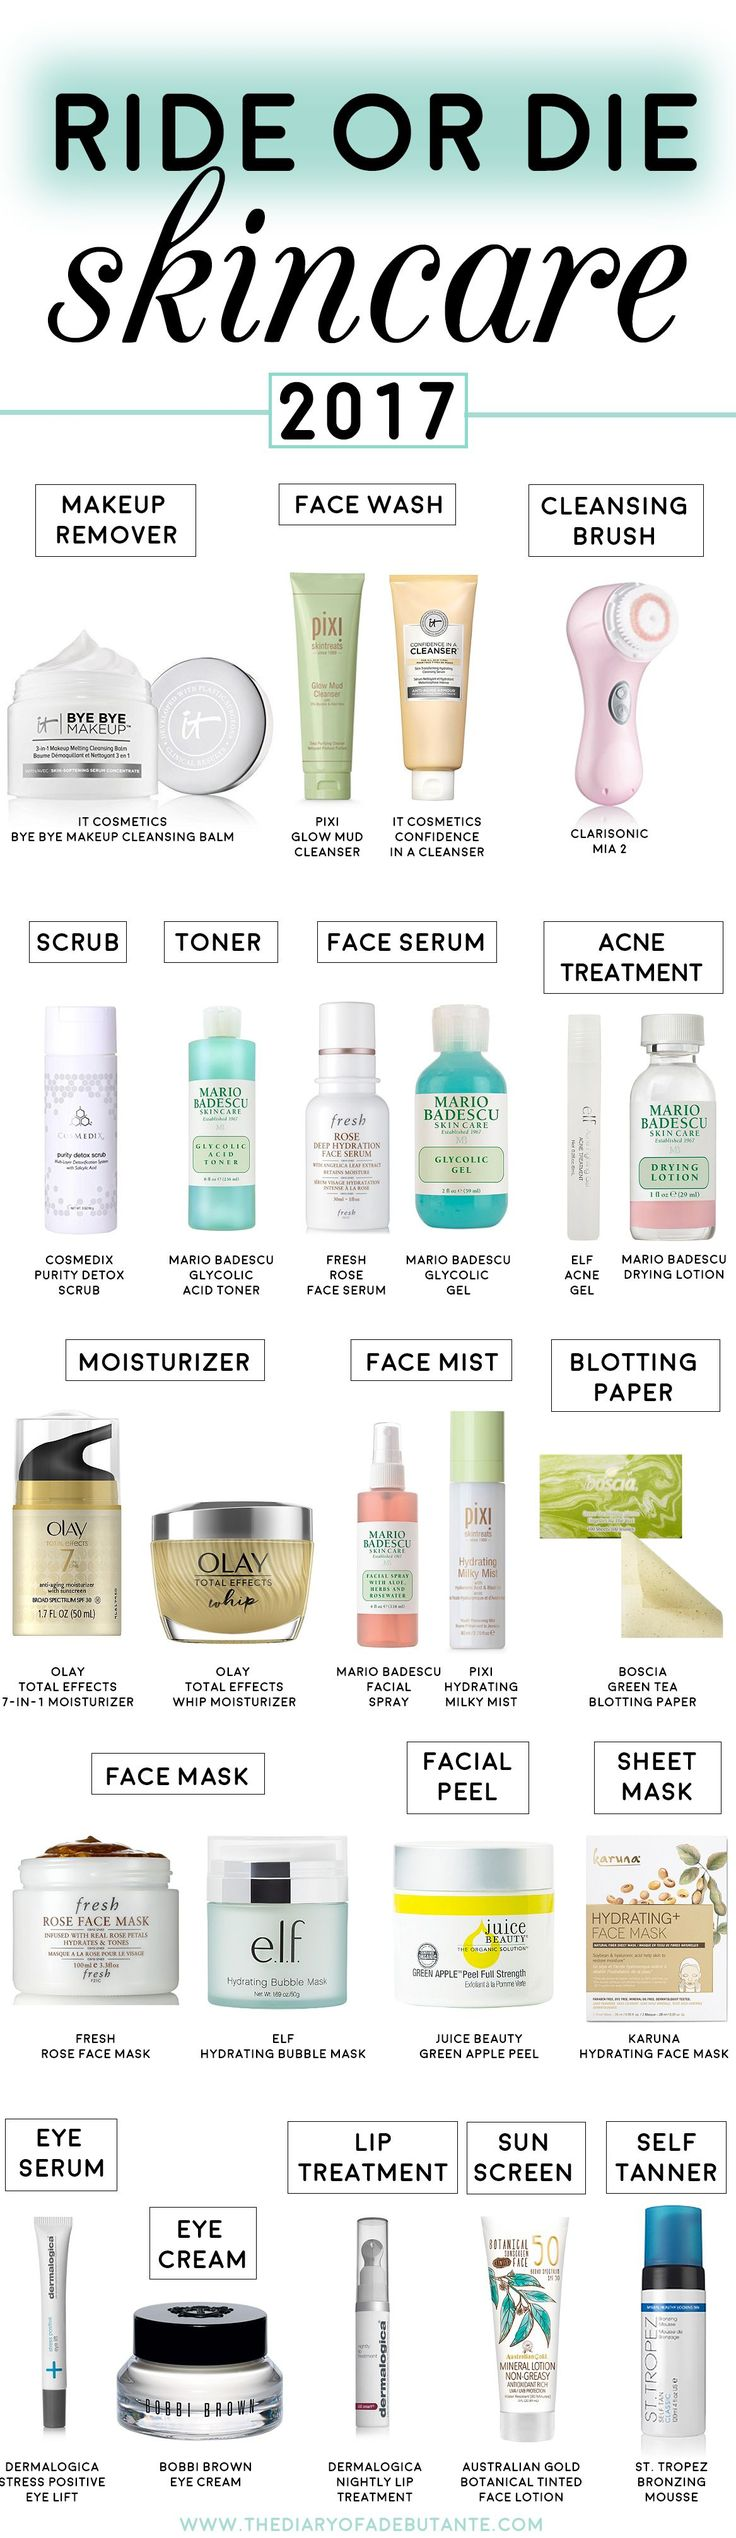 Best skin and facial products for oily combination skin | Best skincare products for acne prone skin | Ride or Die Skincare | Best anti-aging skin products | Ride or Die Beauty: Best Skincare Products of 2017 by fashion and beauty blogger Stephanie Ziajka from Diary of a Debutante